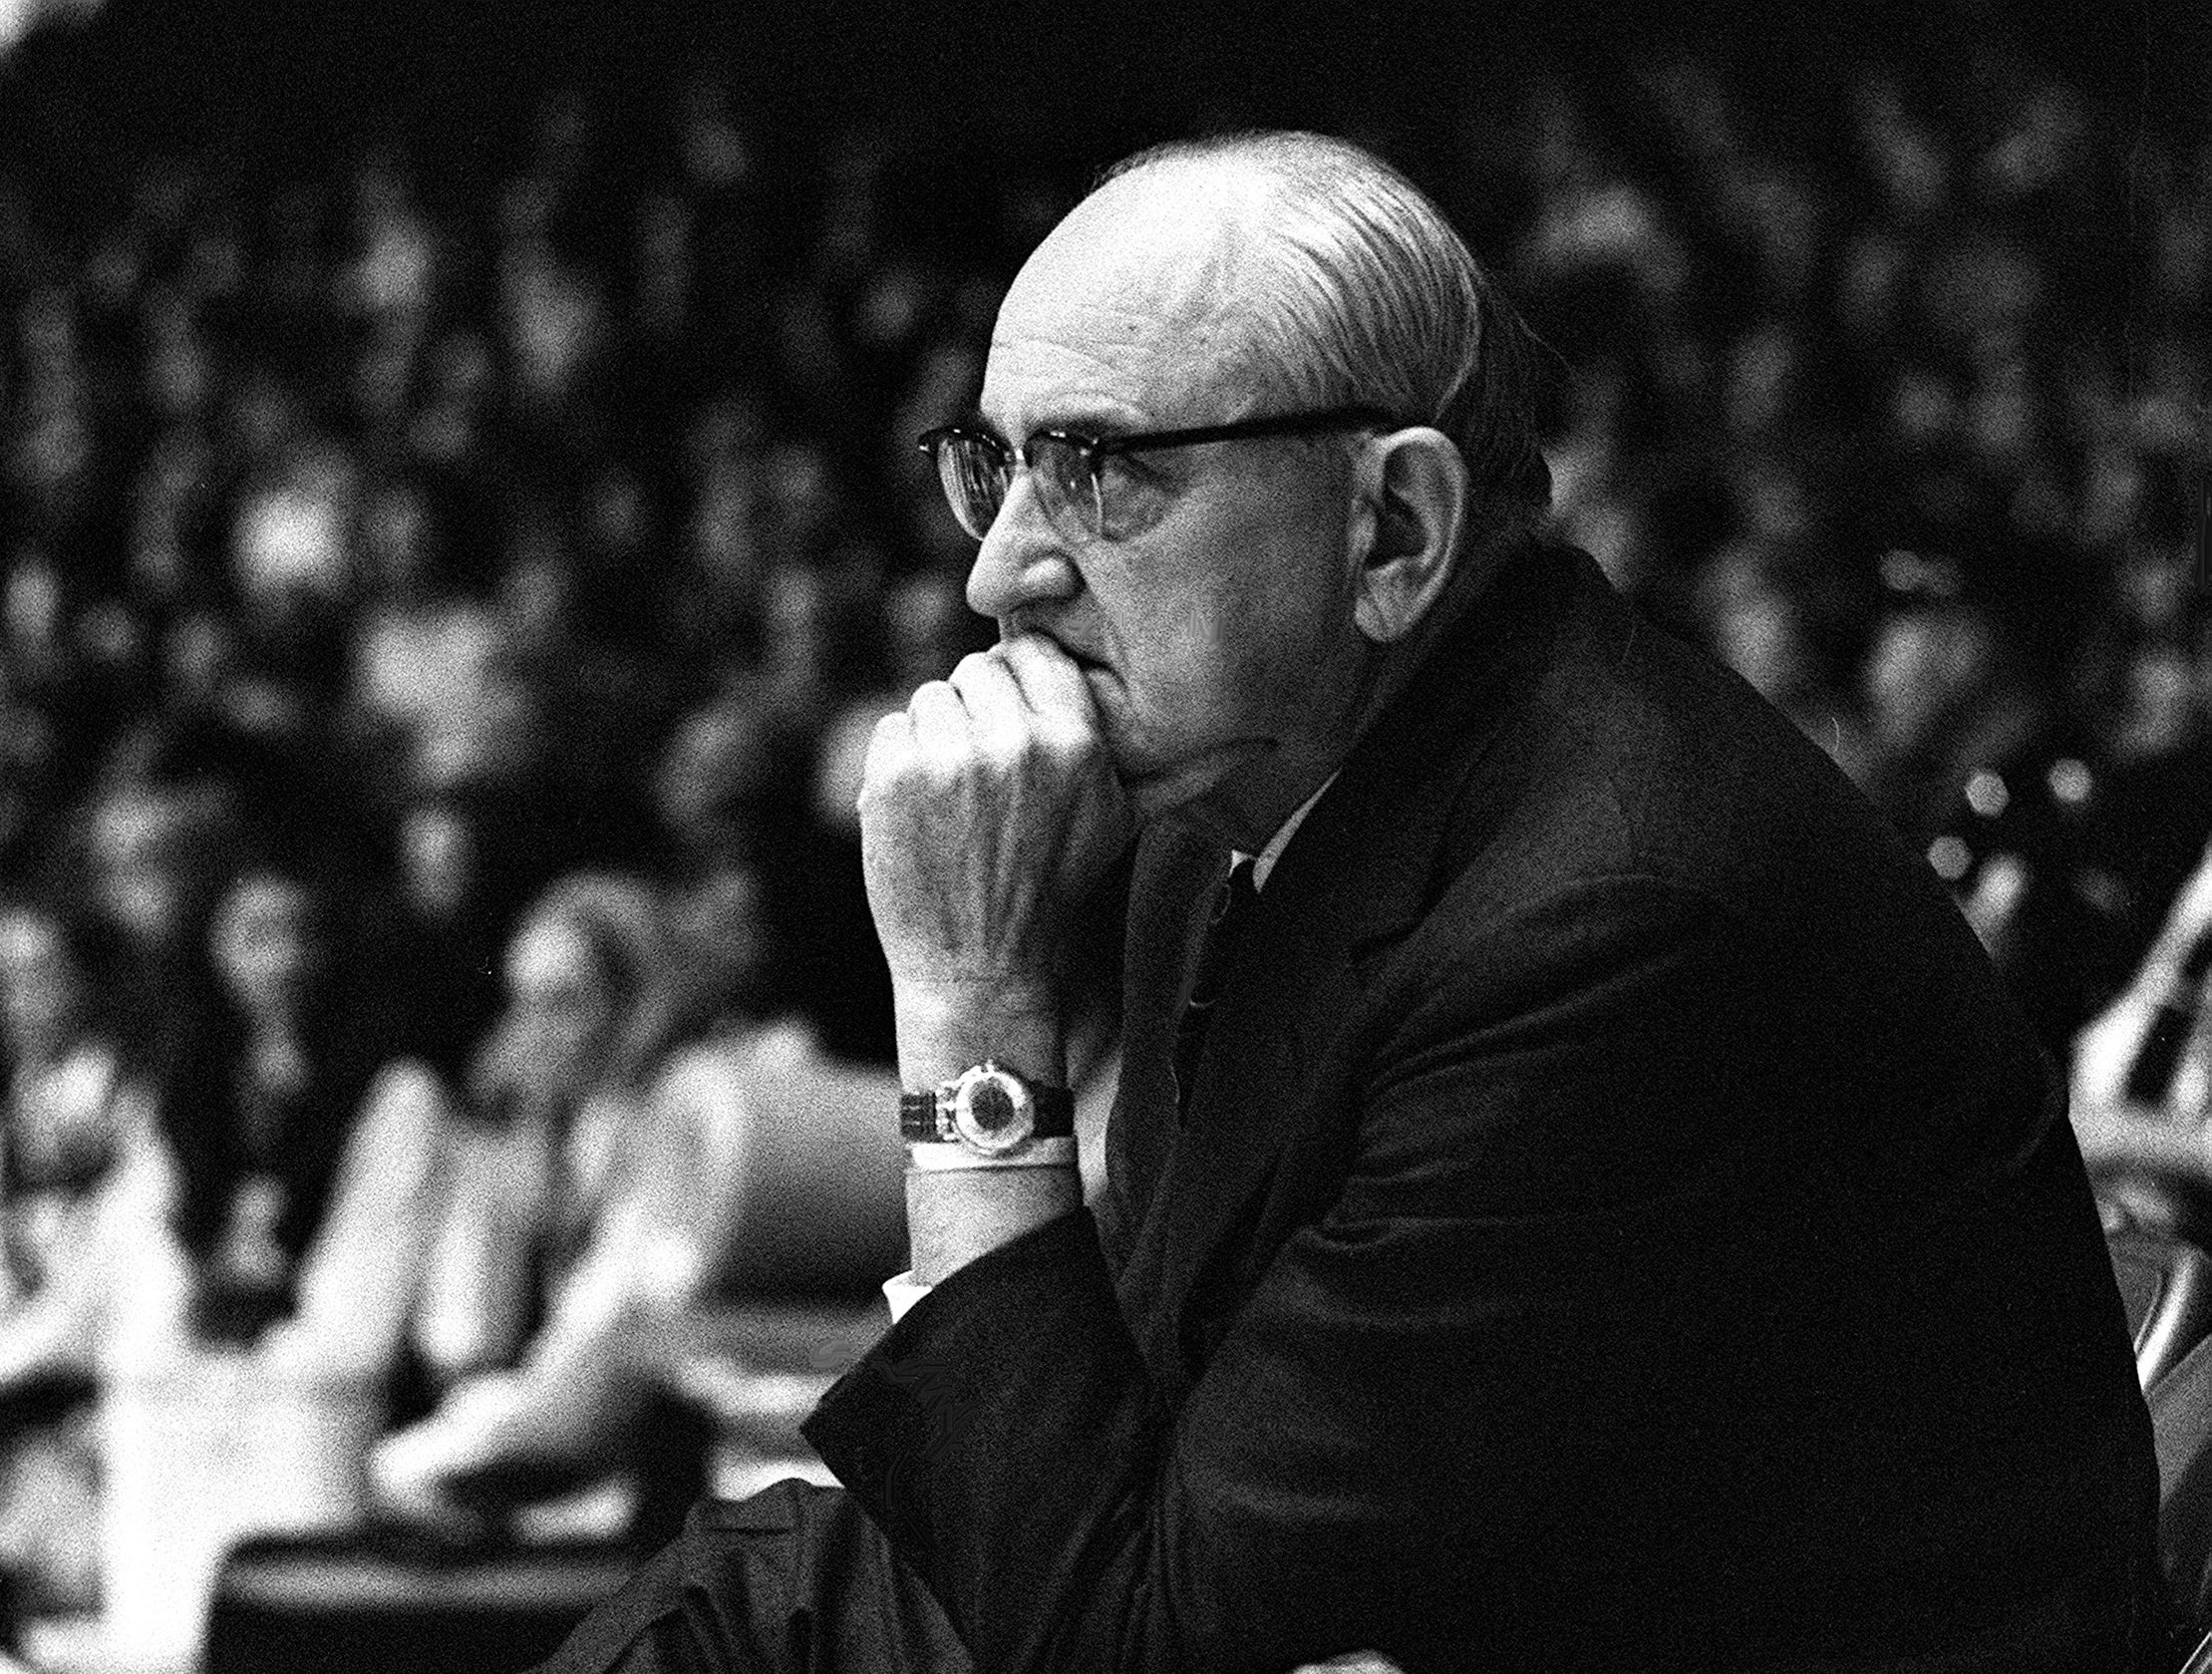 Kentucky ailing head coach Adolph Rupp, with his bad foot on a chair, watches his assistant coach Joe B. Hall lead the team against Vanderbilt Feb. 27, 1971.